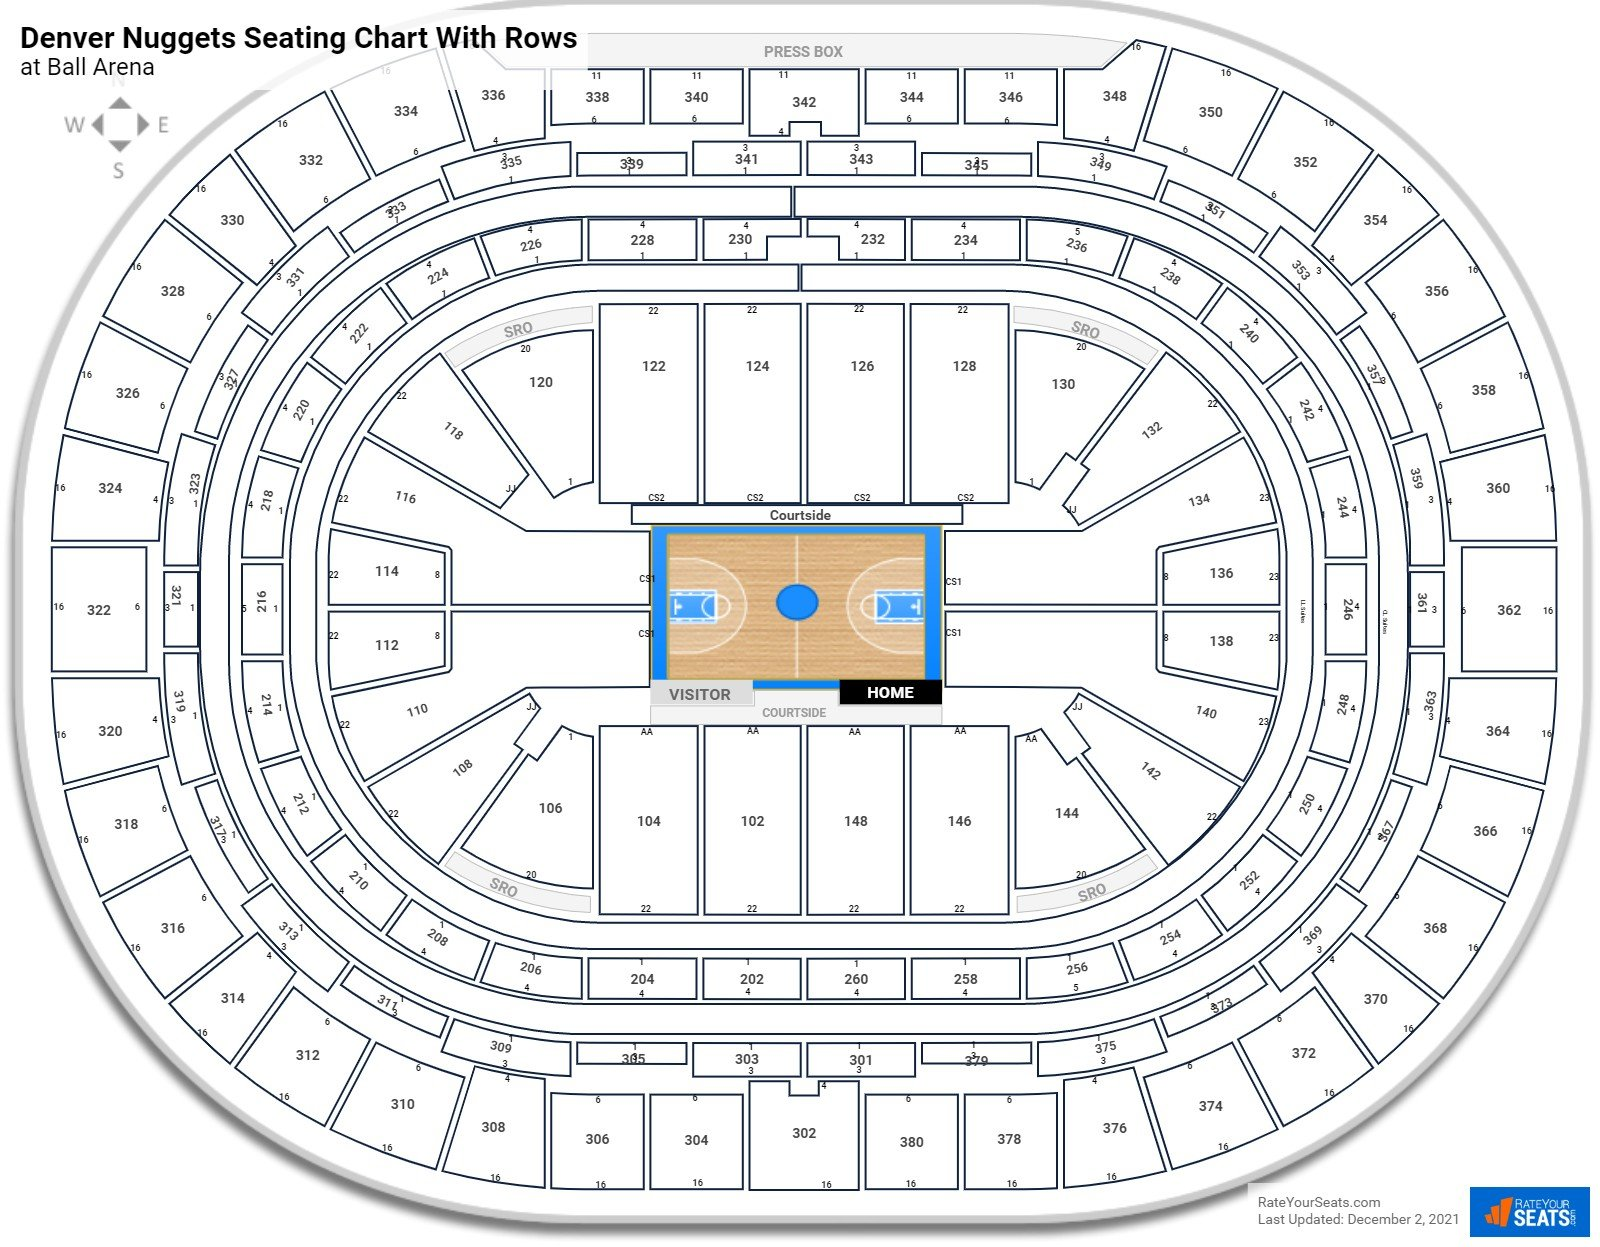 Ball Arena seating chart with rows basketball